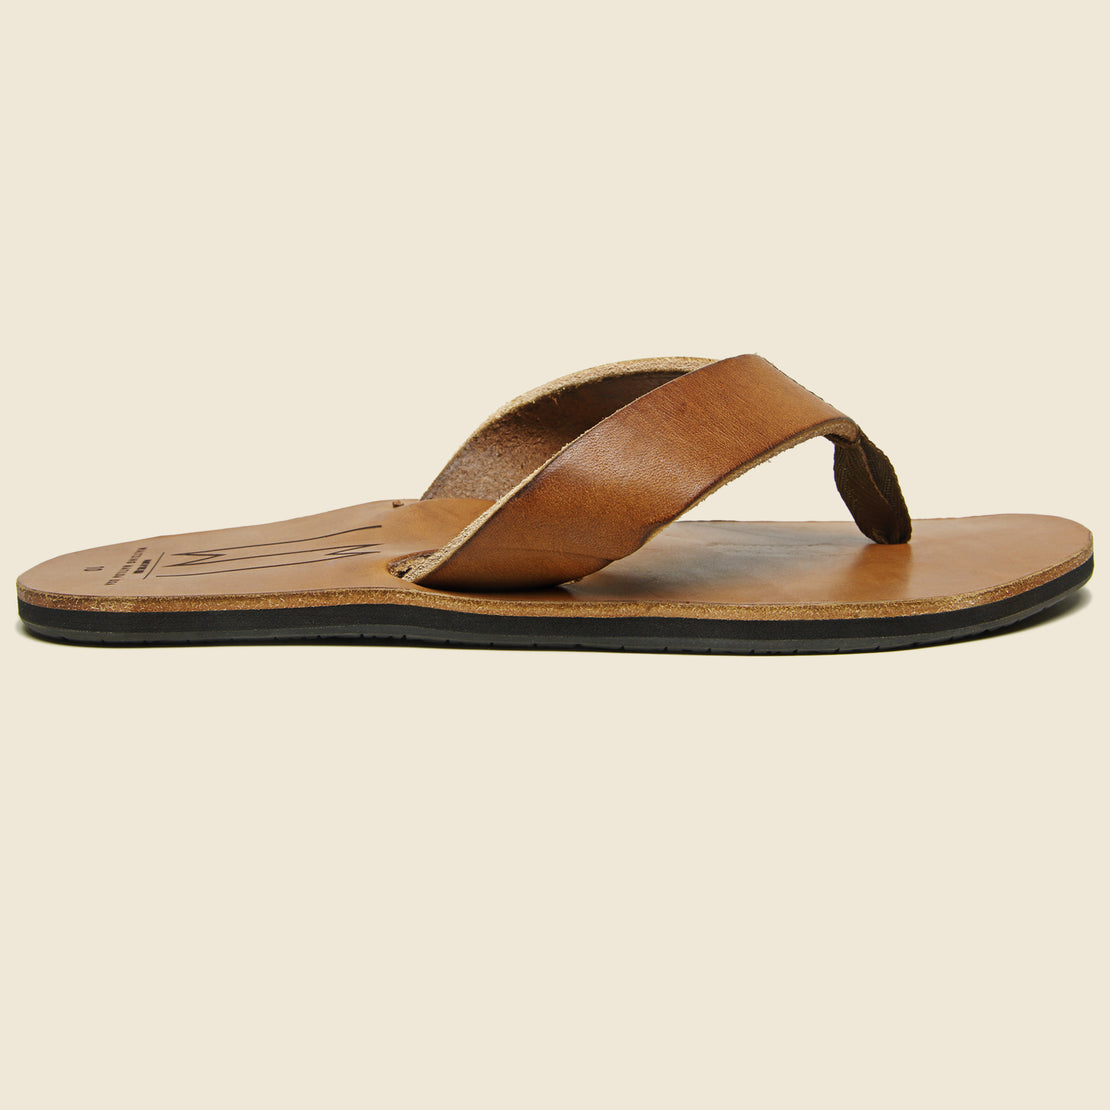 Waltzing Matilda Ace Leather Sandal - Brown